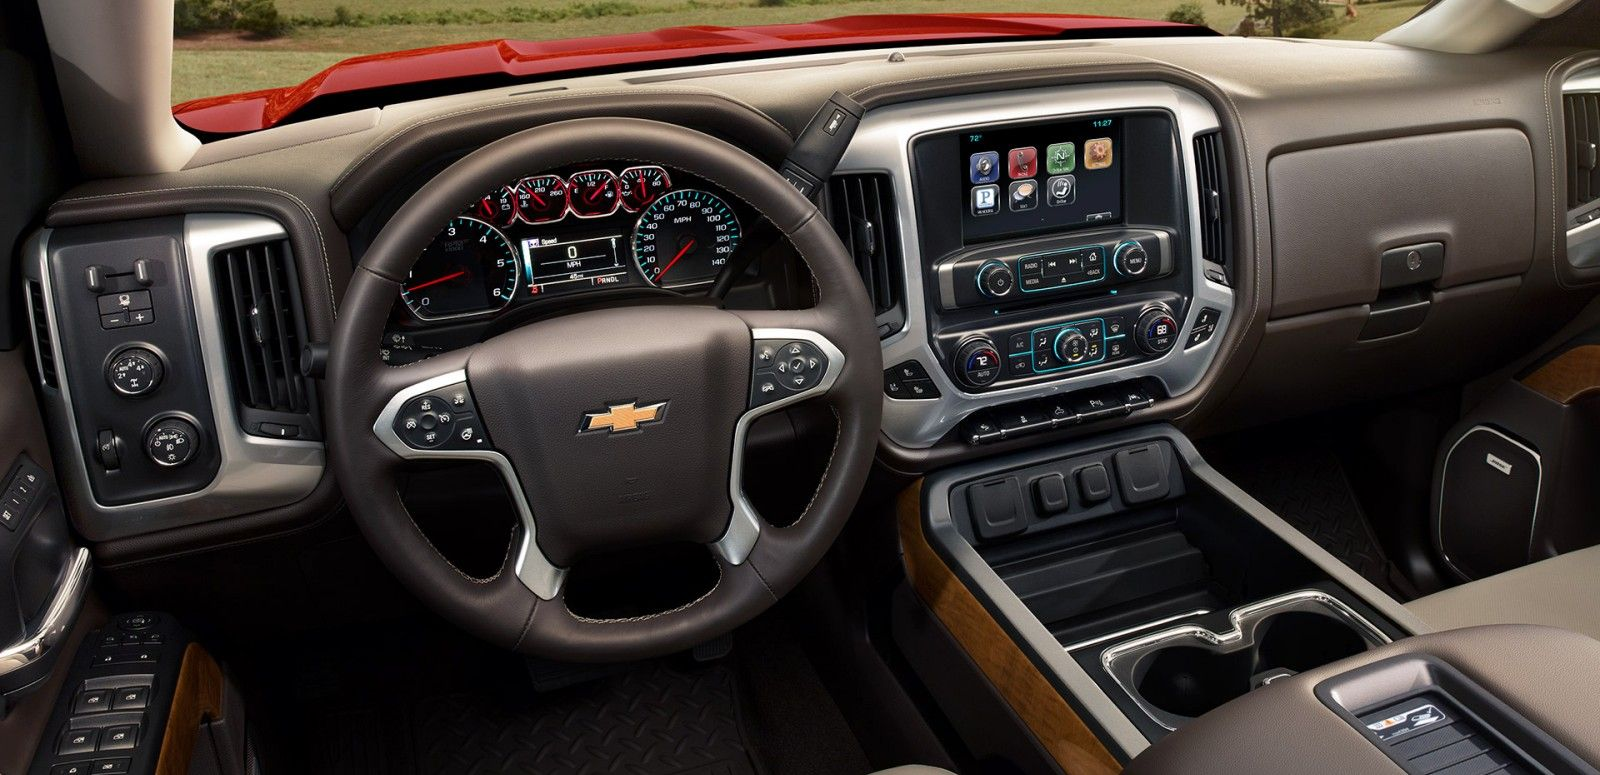 Technologically Advanced Interior of the Silverado 1500